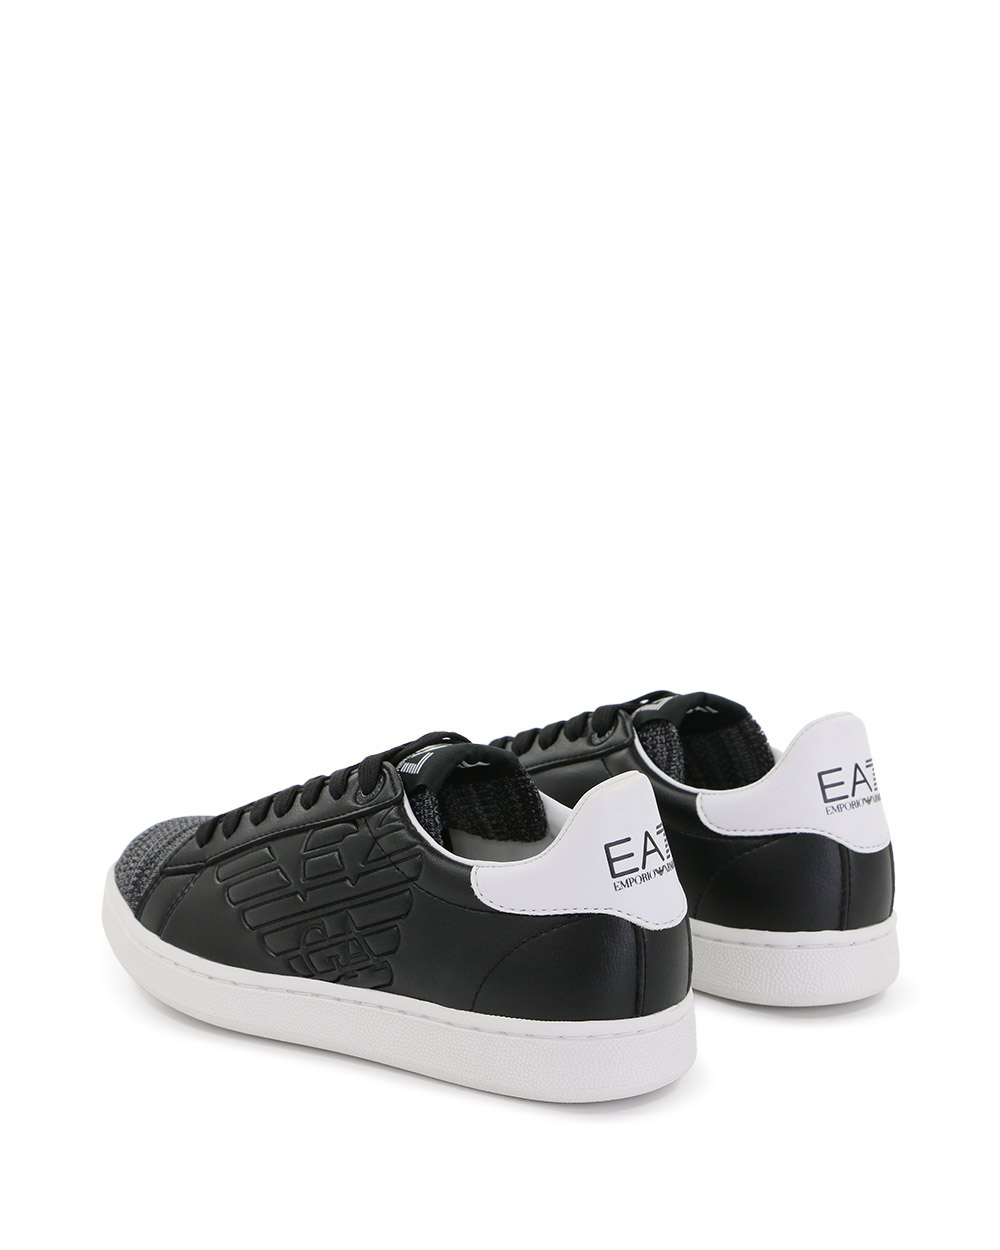 Classic Premium U Training Sneakers 2